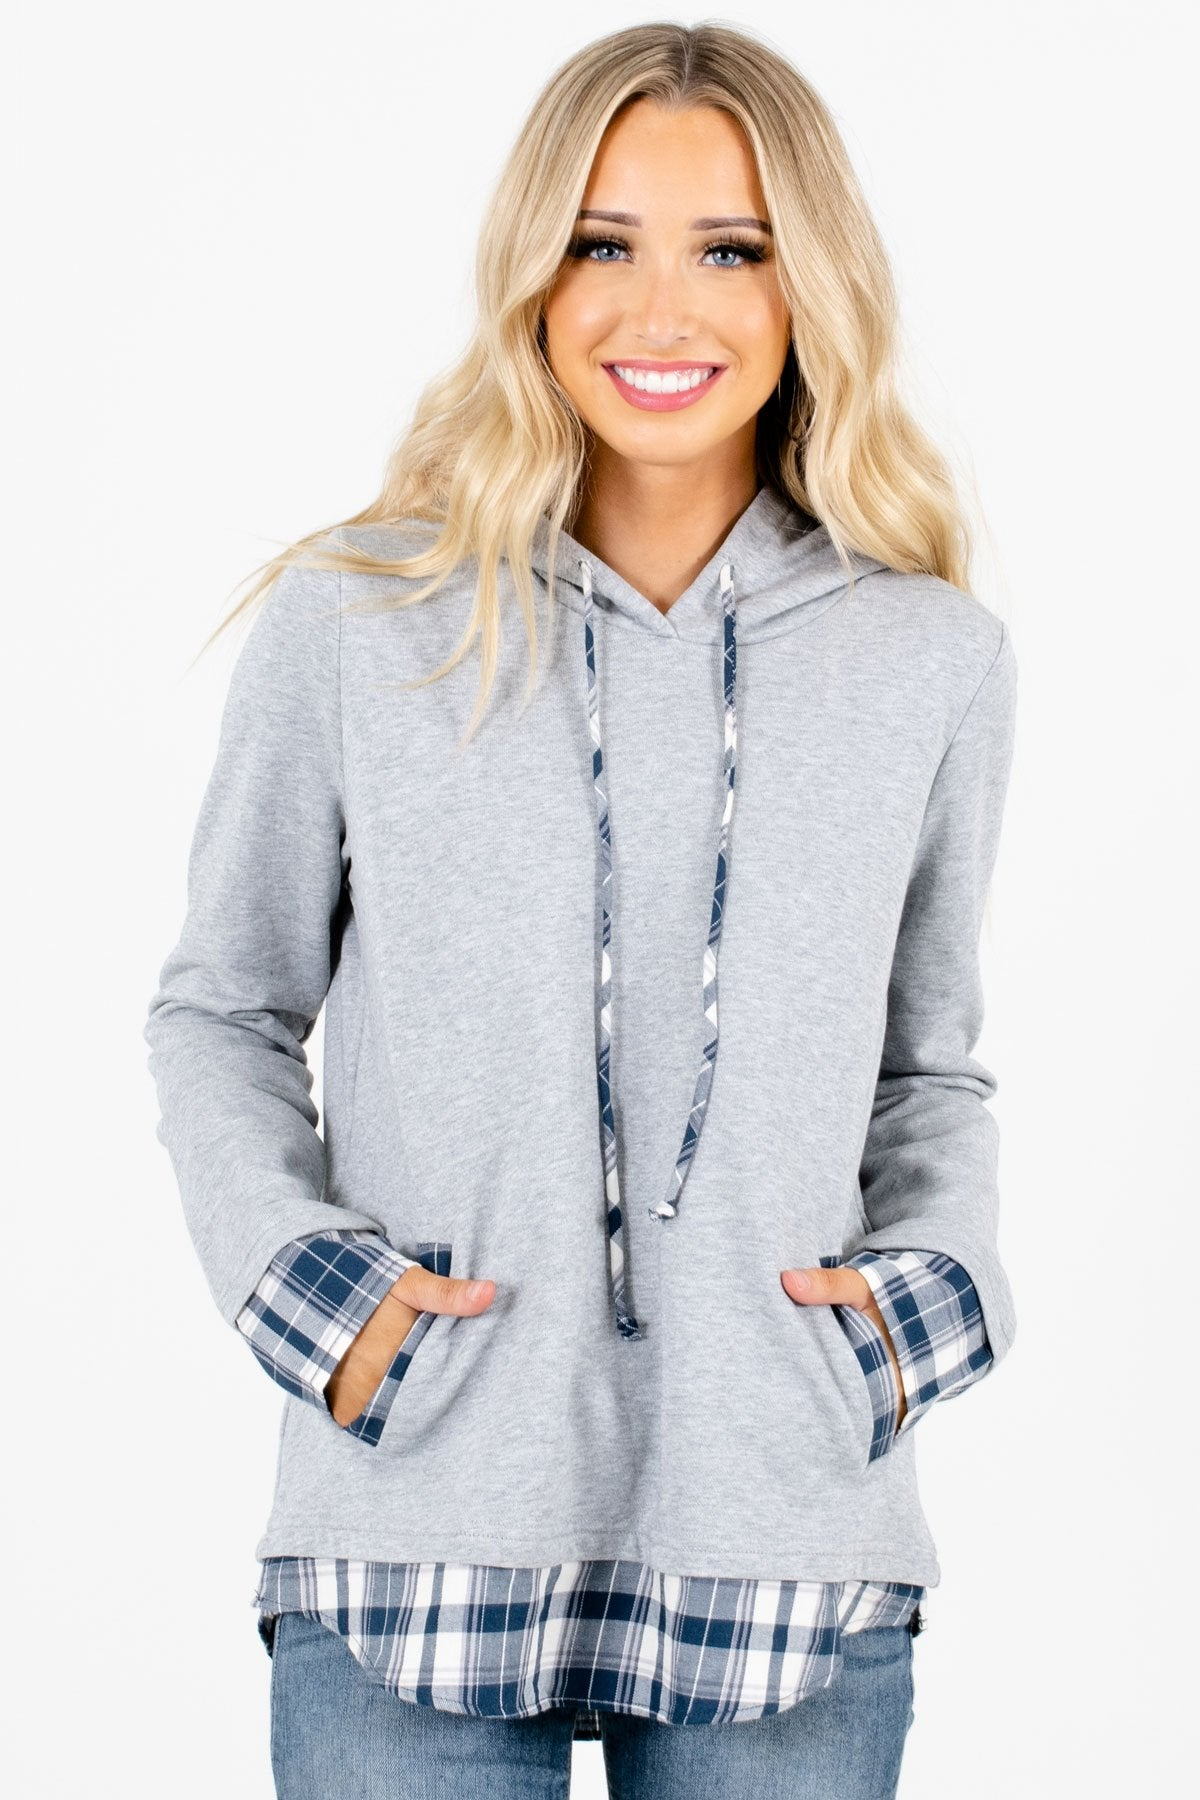 Gray Boutique Hoodie with Blue and White Plaid Accents for Women